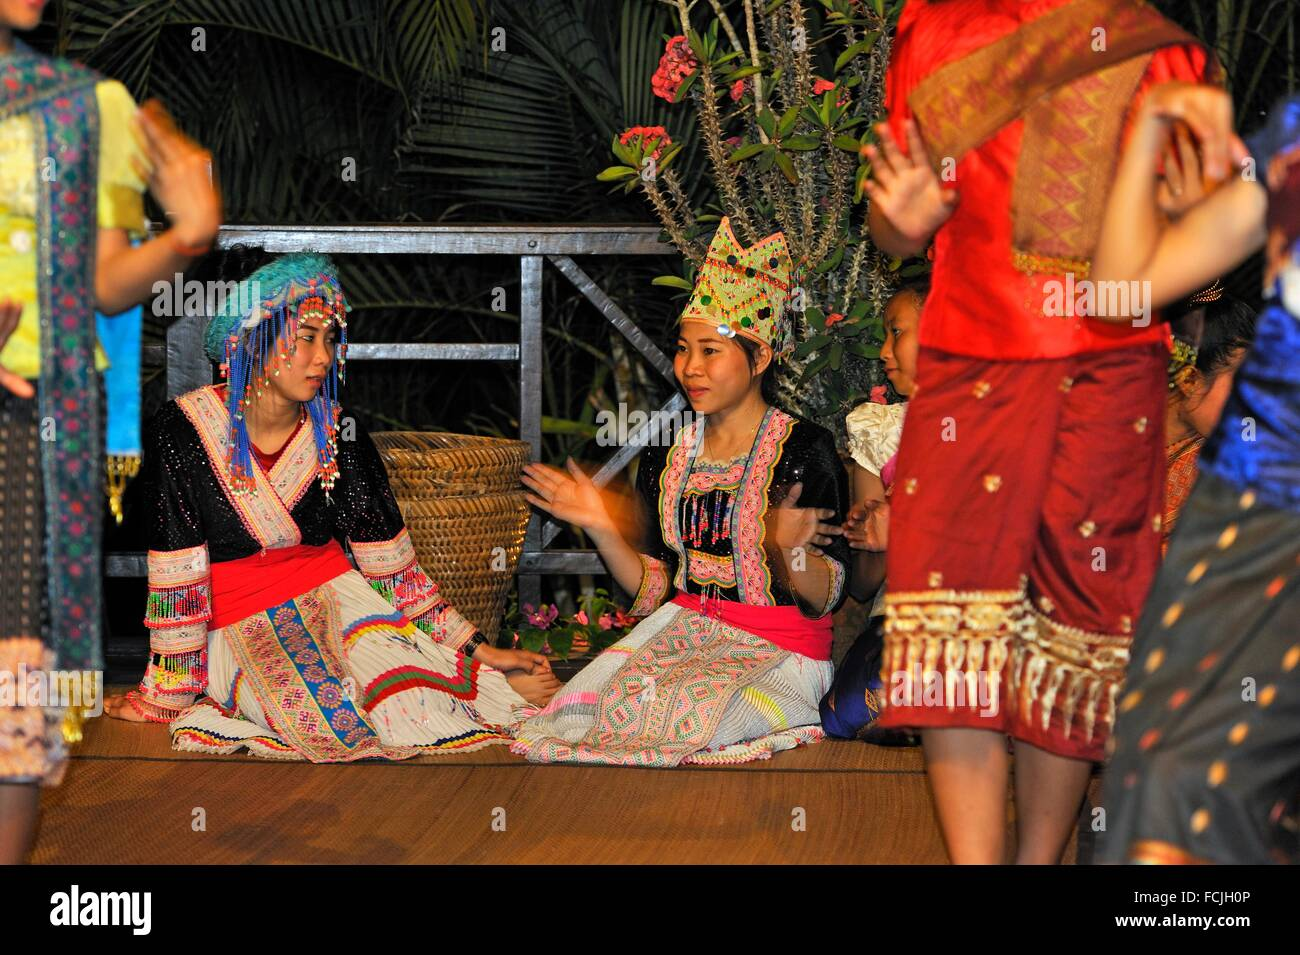 traditional folk dance show at Luang Say Lodge on the Mekong river bank, Pakbeng, Oudomxay Province, Laos, Southeast - Stock Image